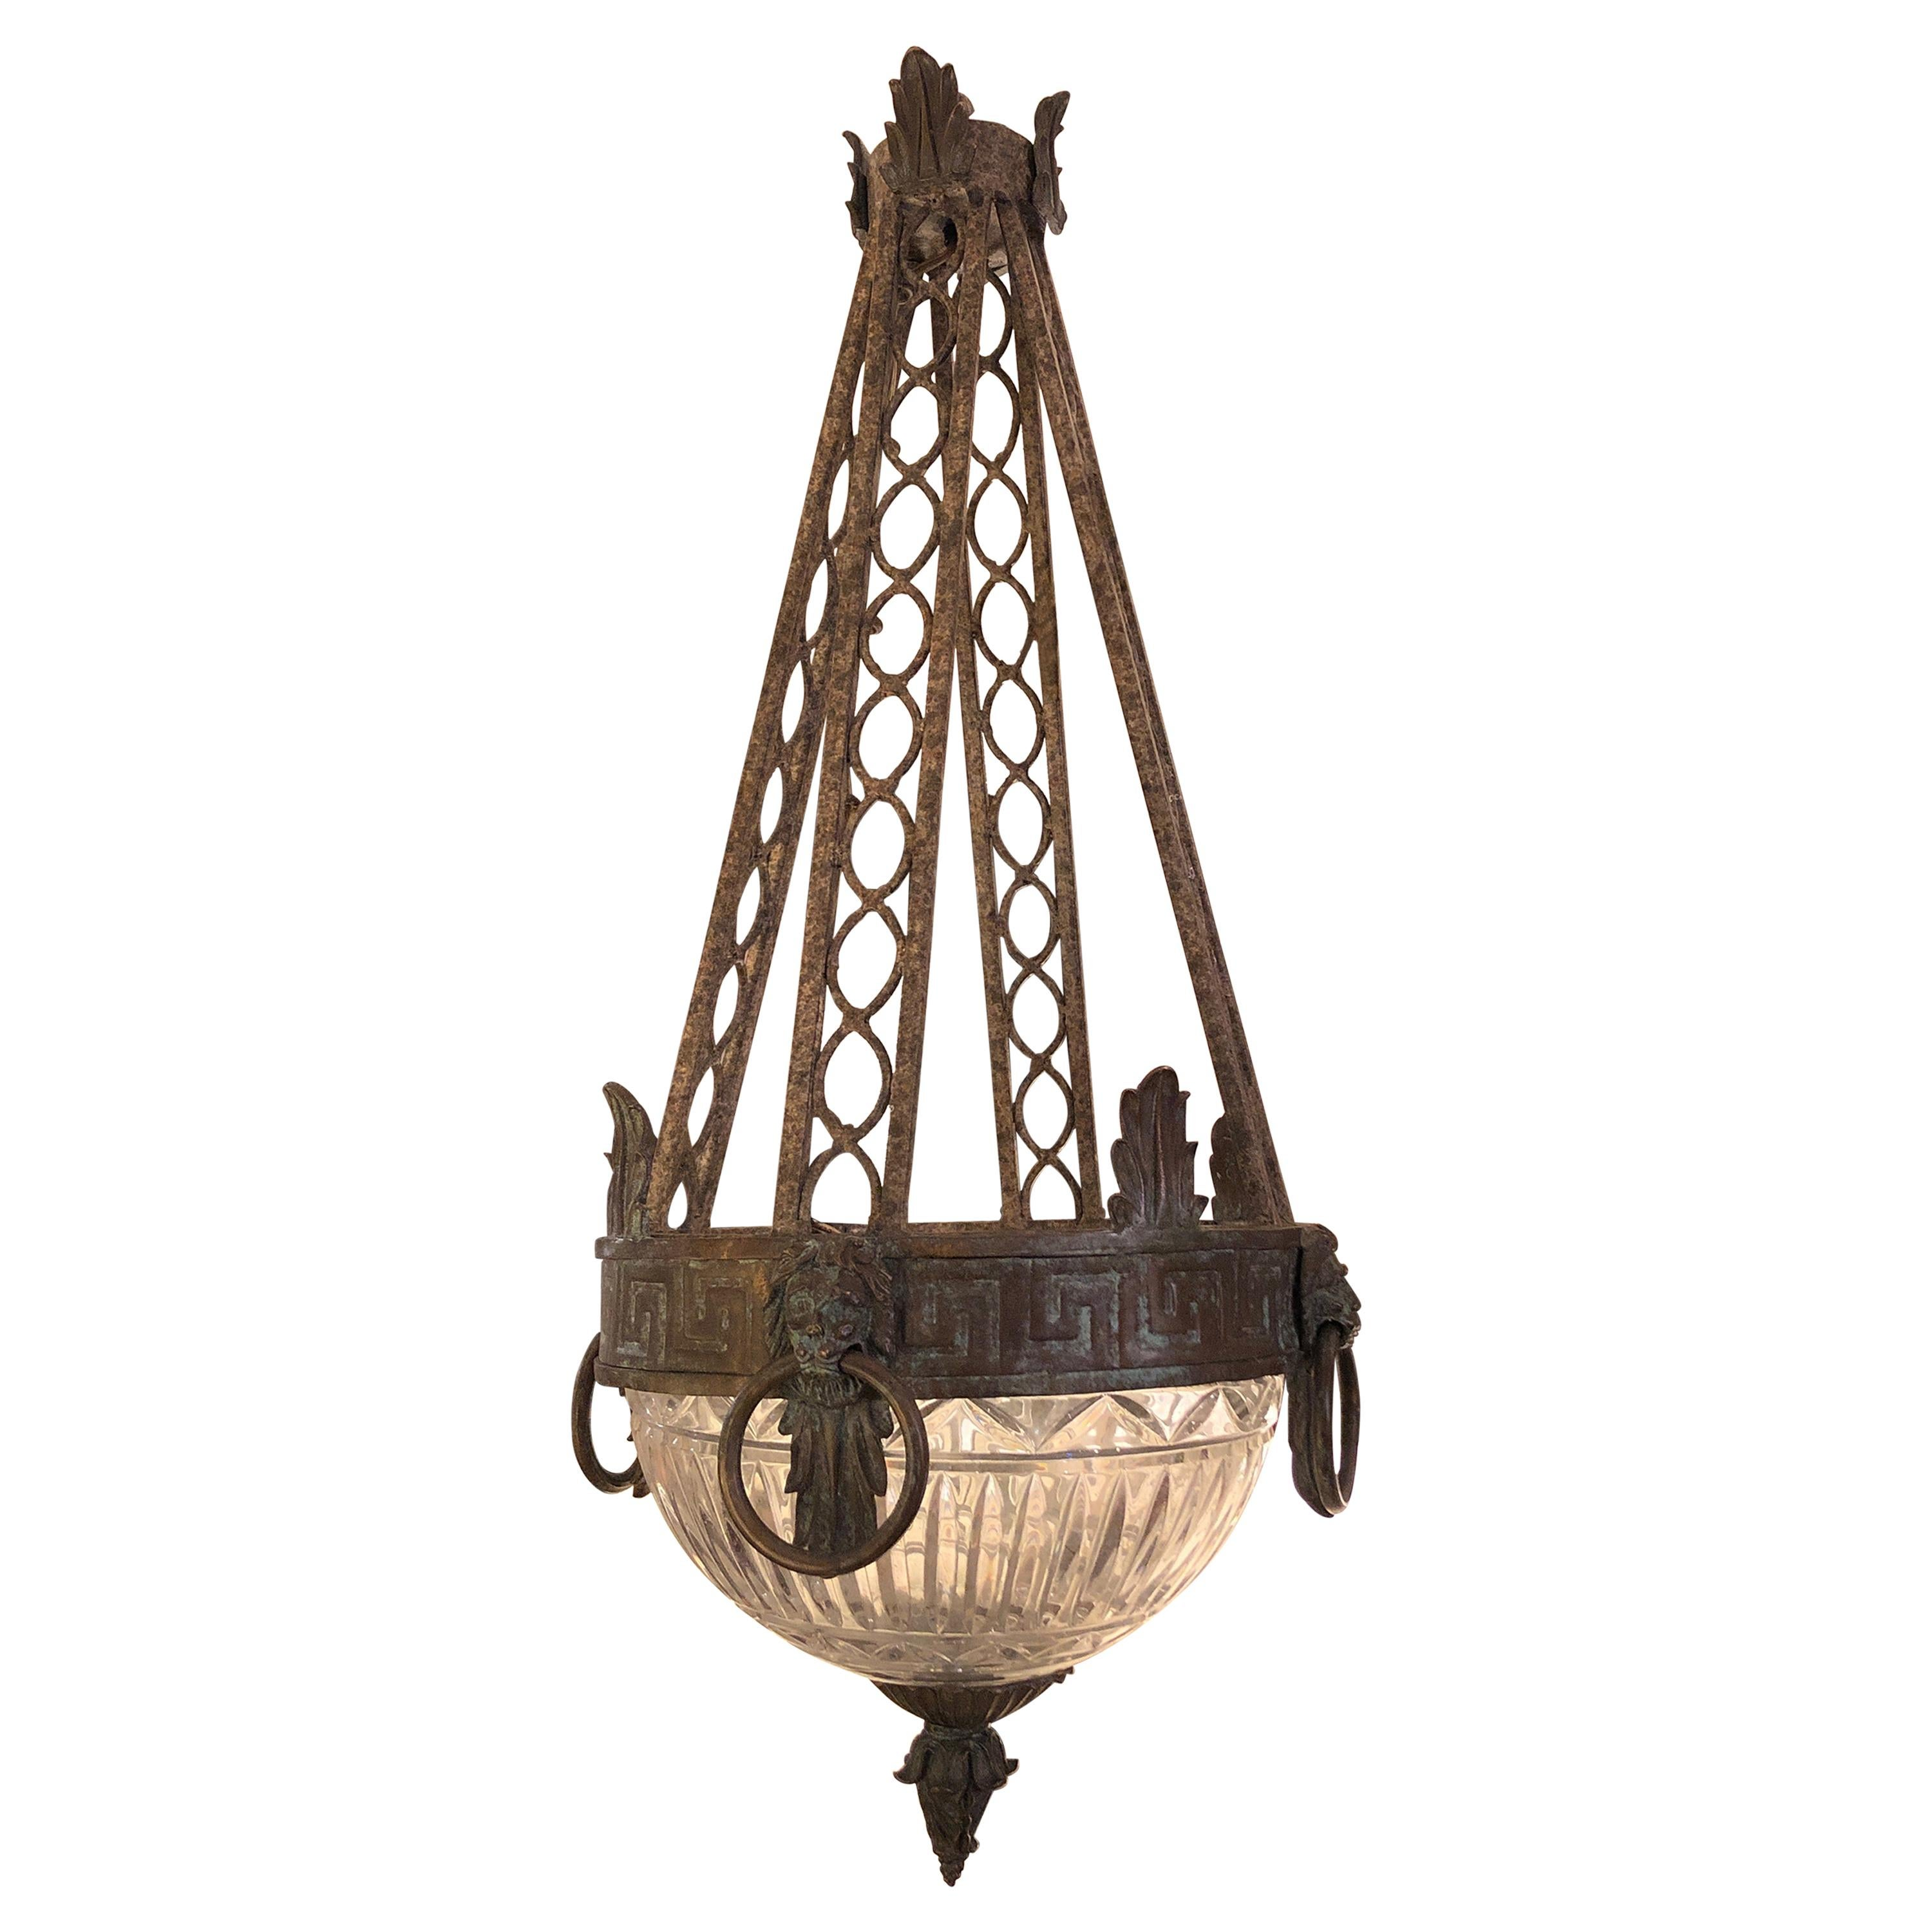 Stunning Neoclassical Iron and Cut Glass Chandelier Pendant